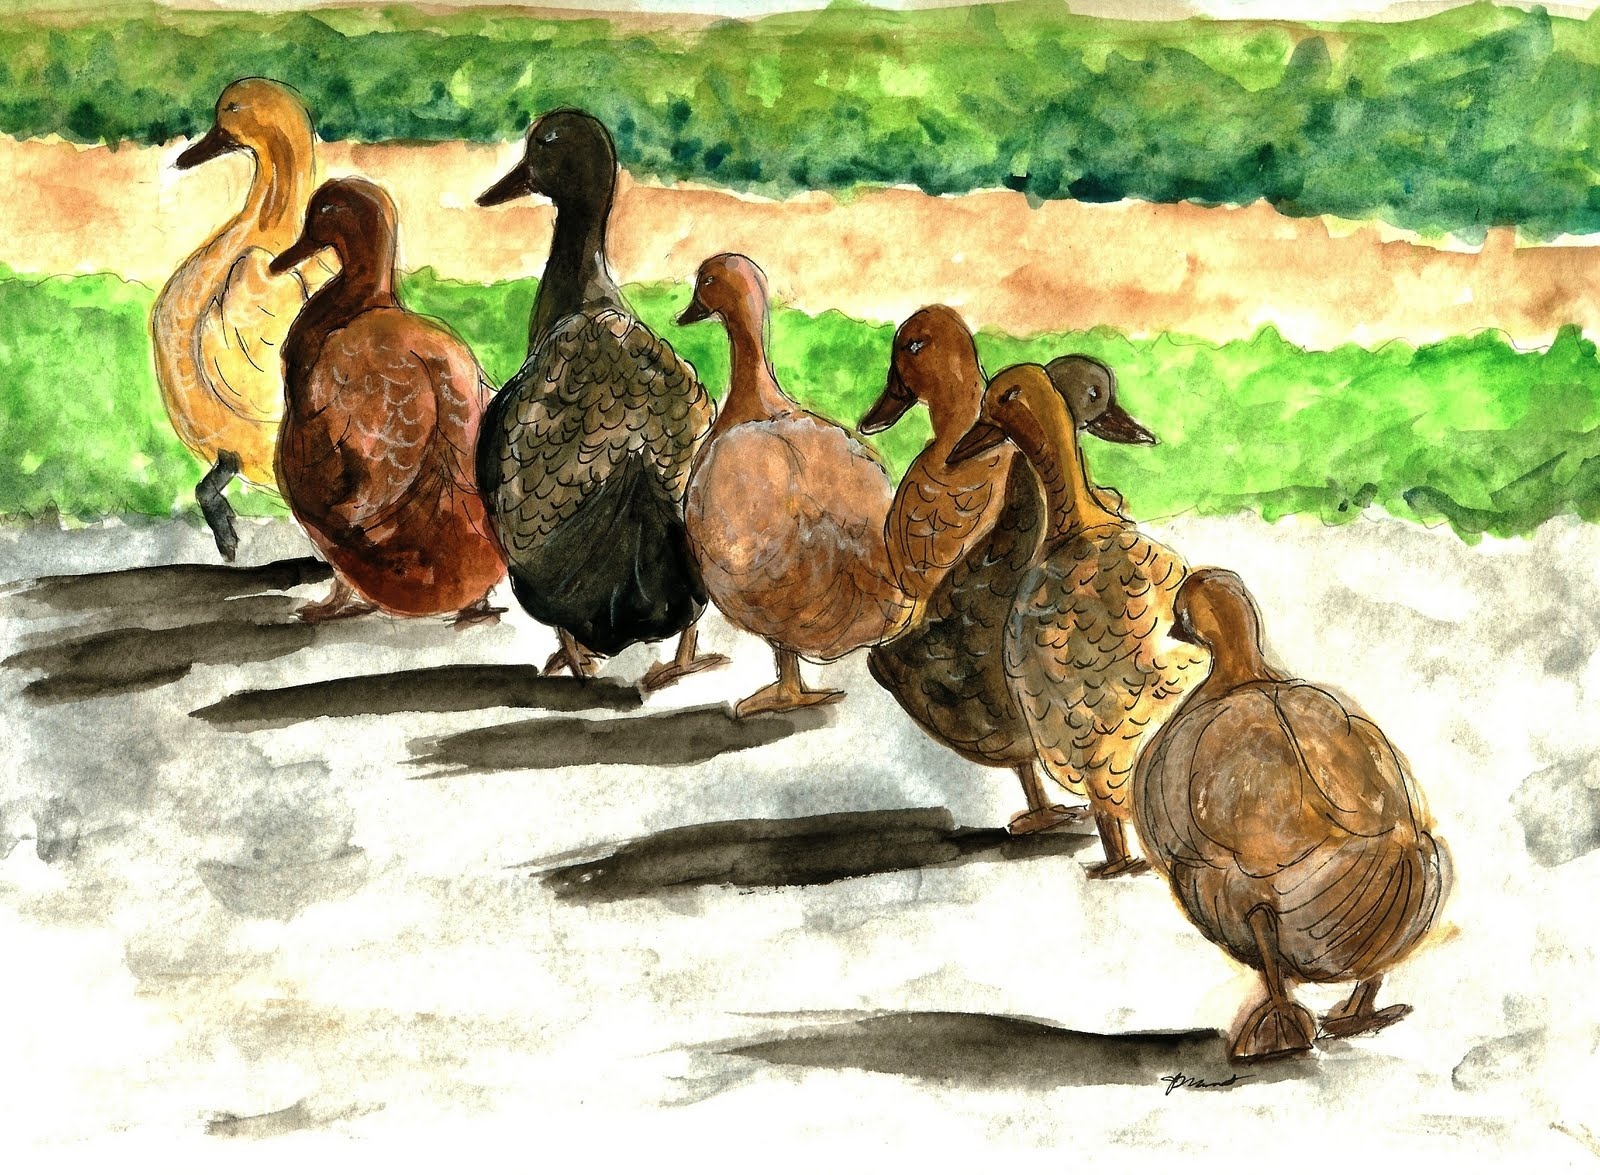 How to Paint Ducks in a Row in Watercolor